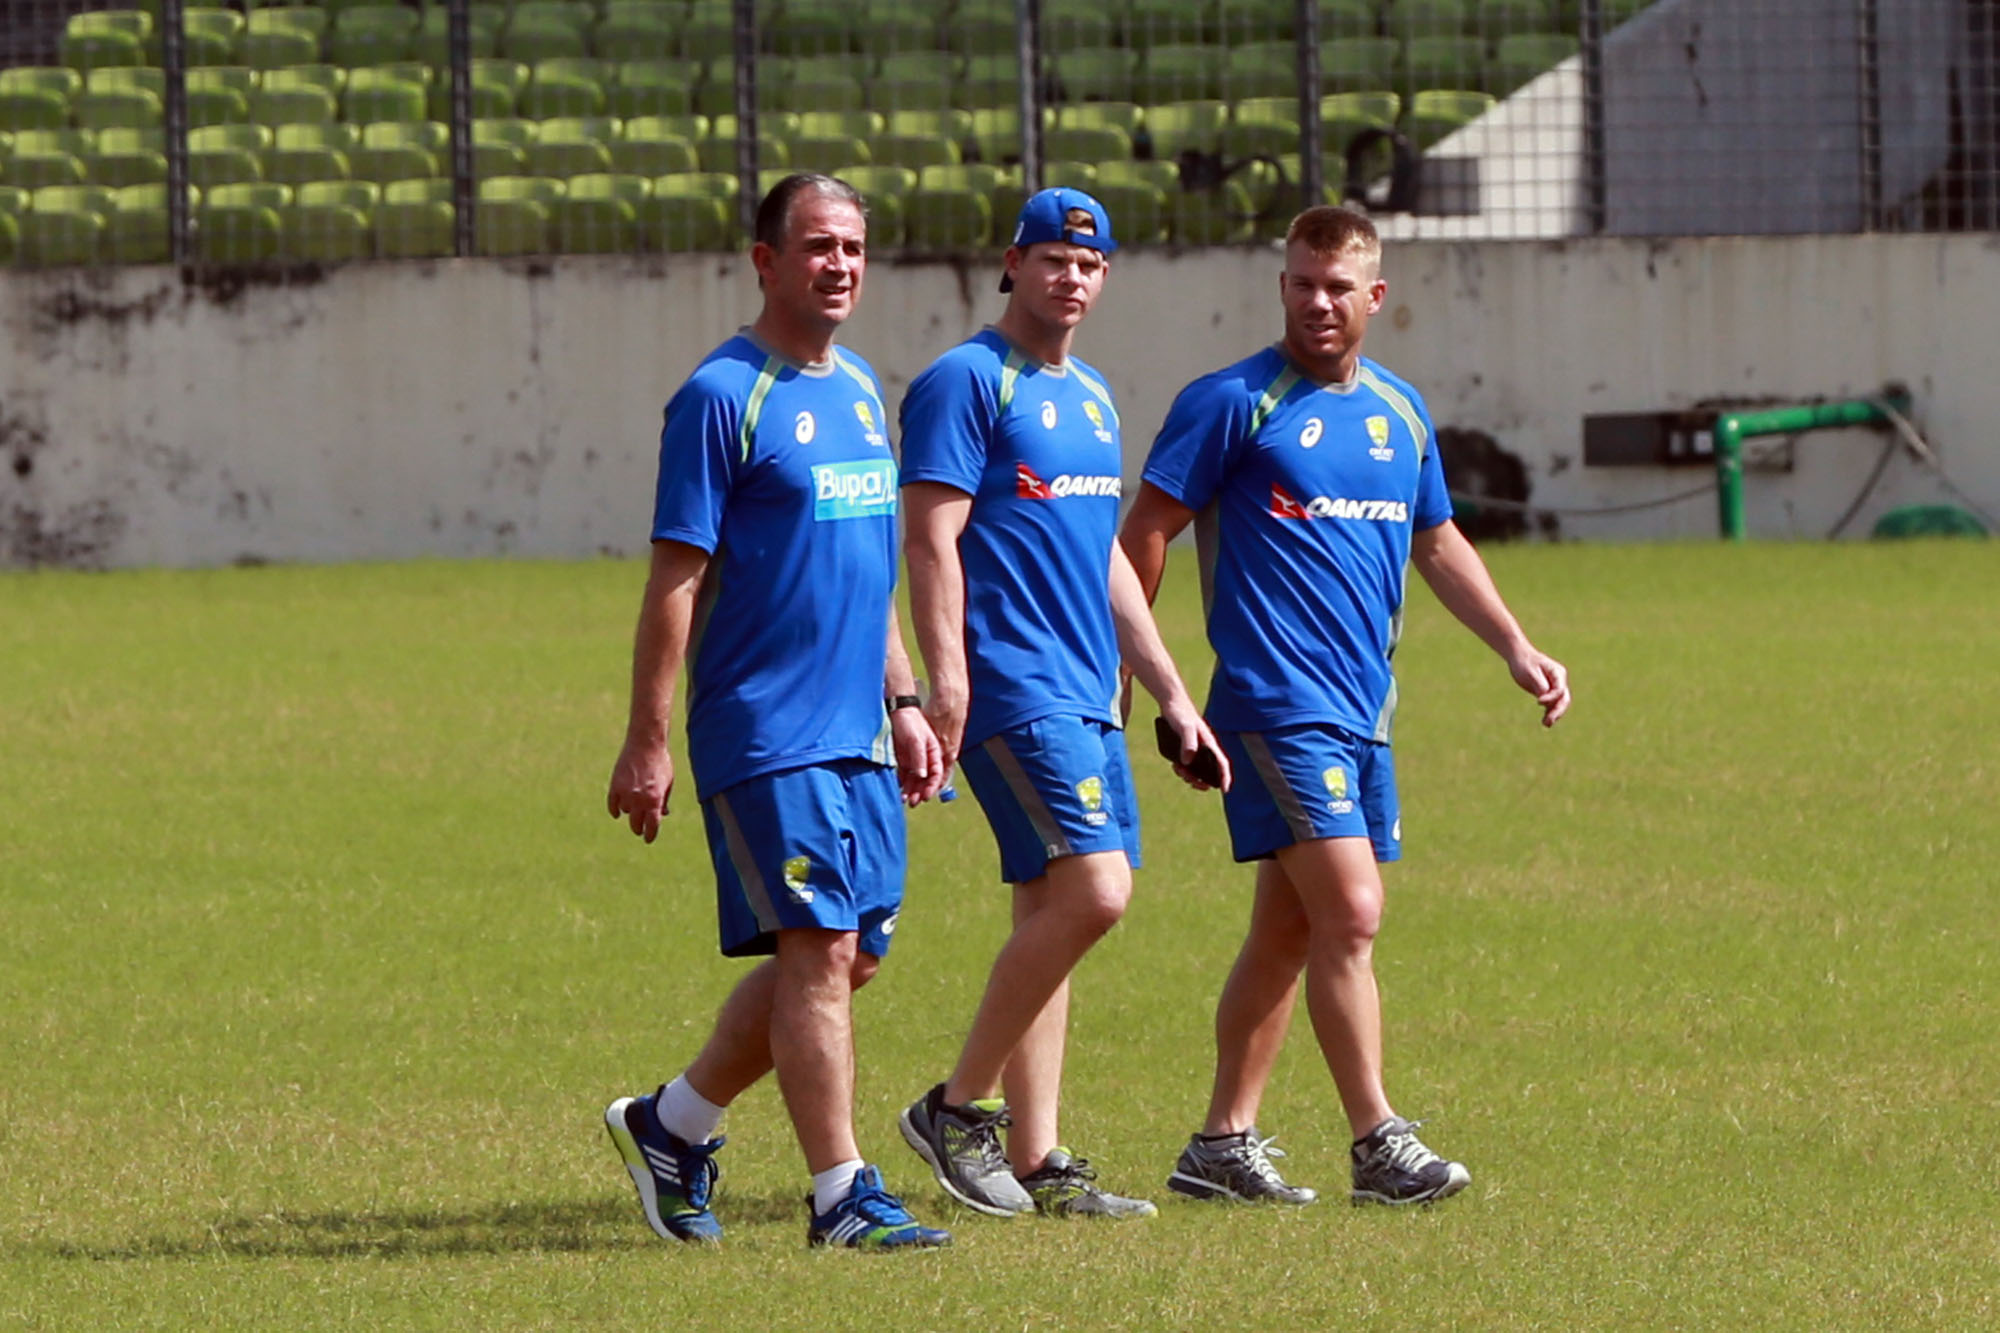 Members of Australian Cricket team during their practice session at the Sher-e-Bangla National Cricket Stadium in Mirpur on Saturday.